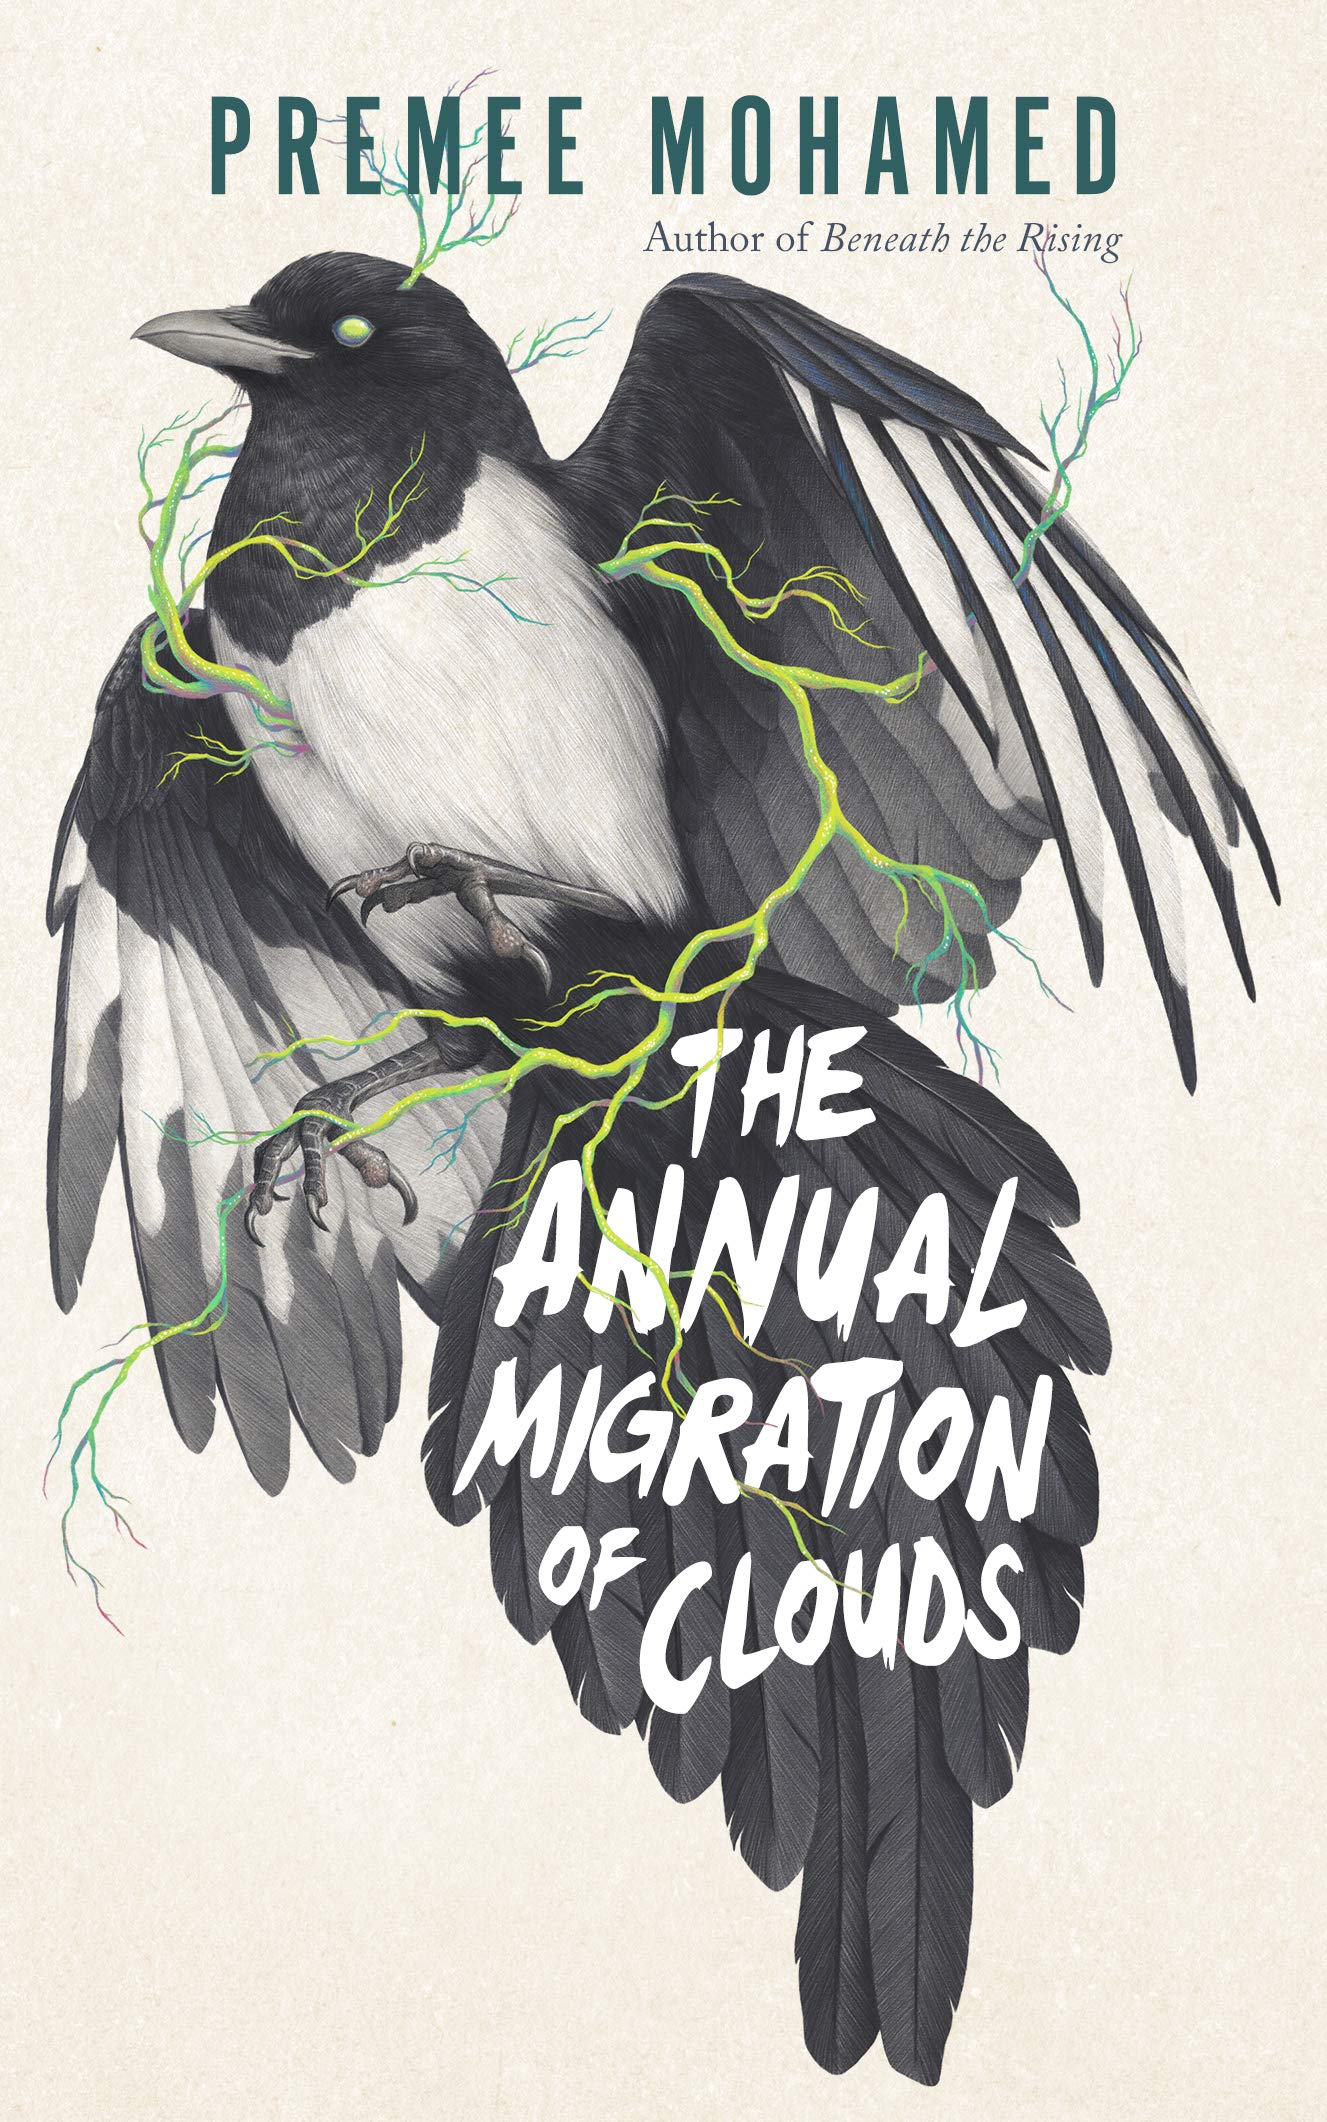 An Annual Migration of Clouds